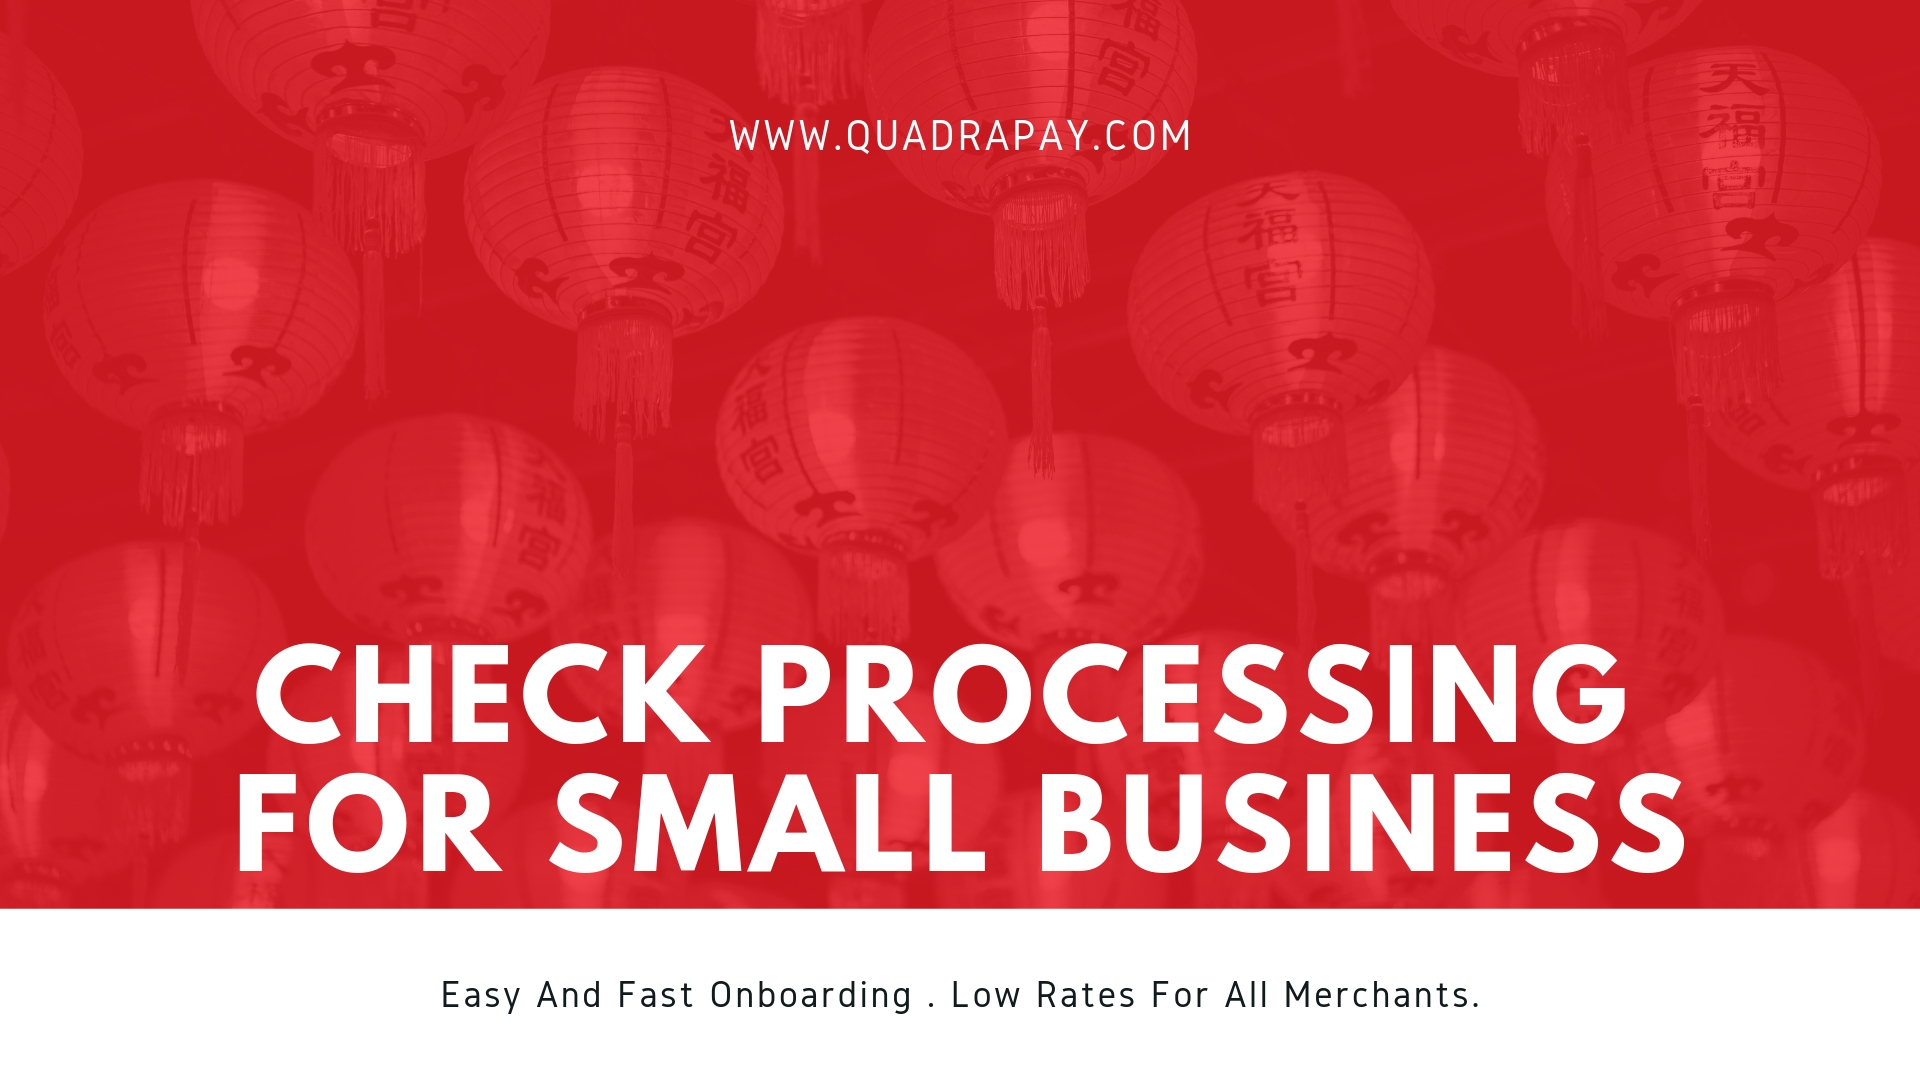 Check Processing For Small Business